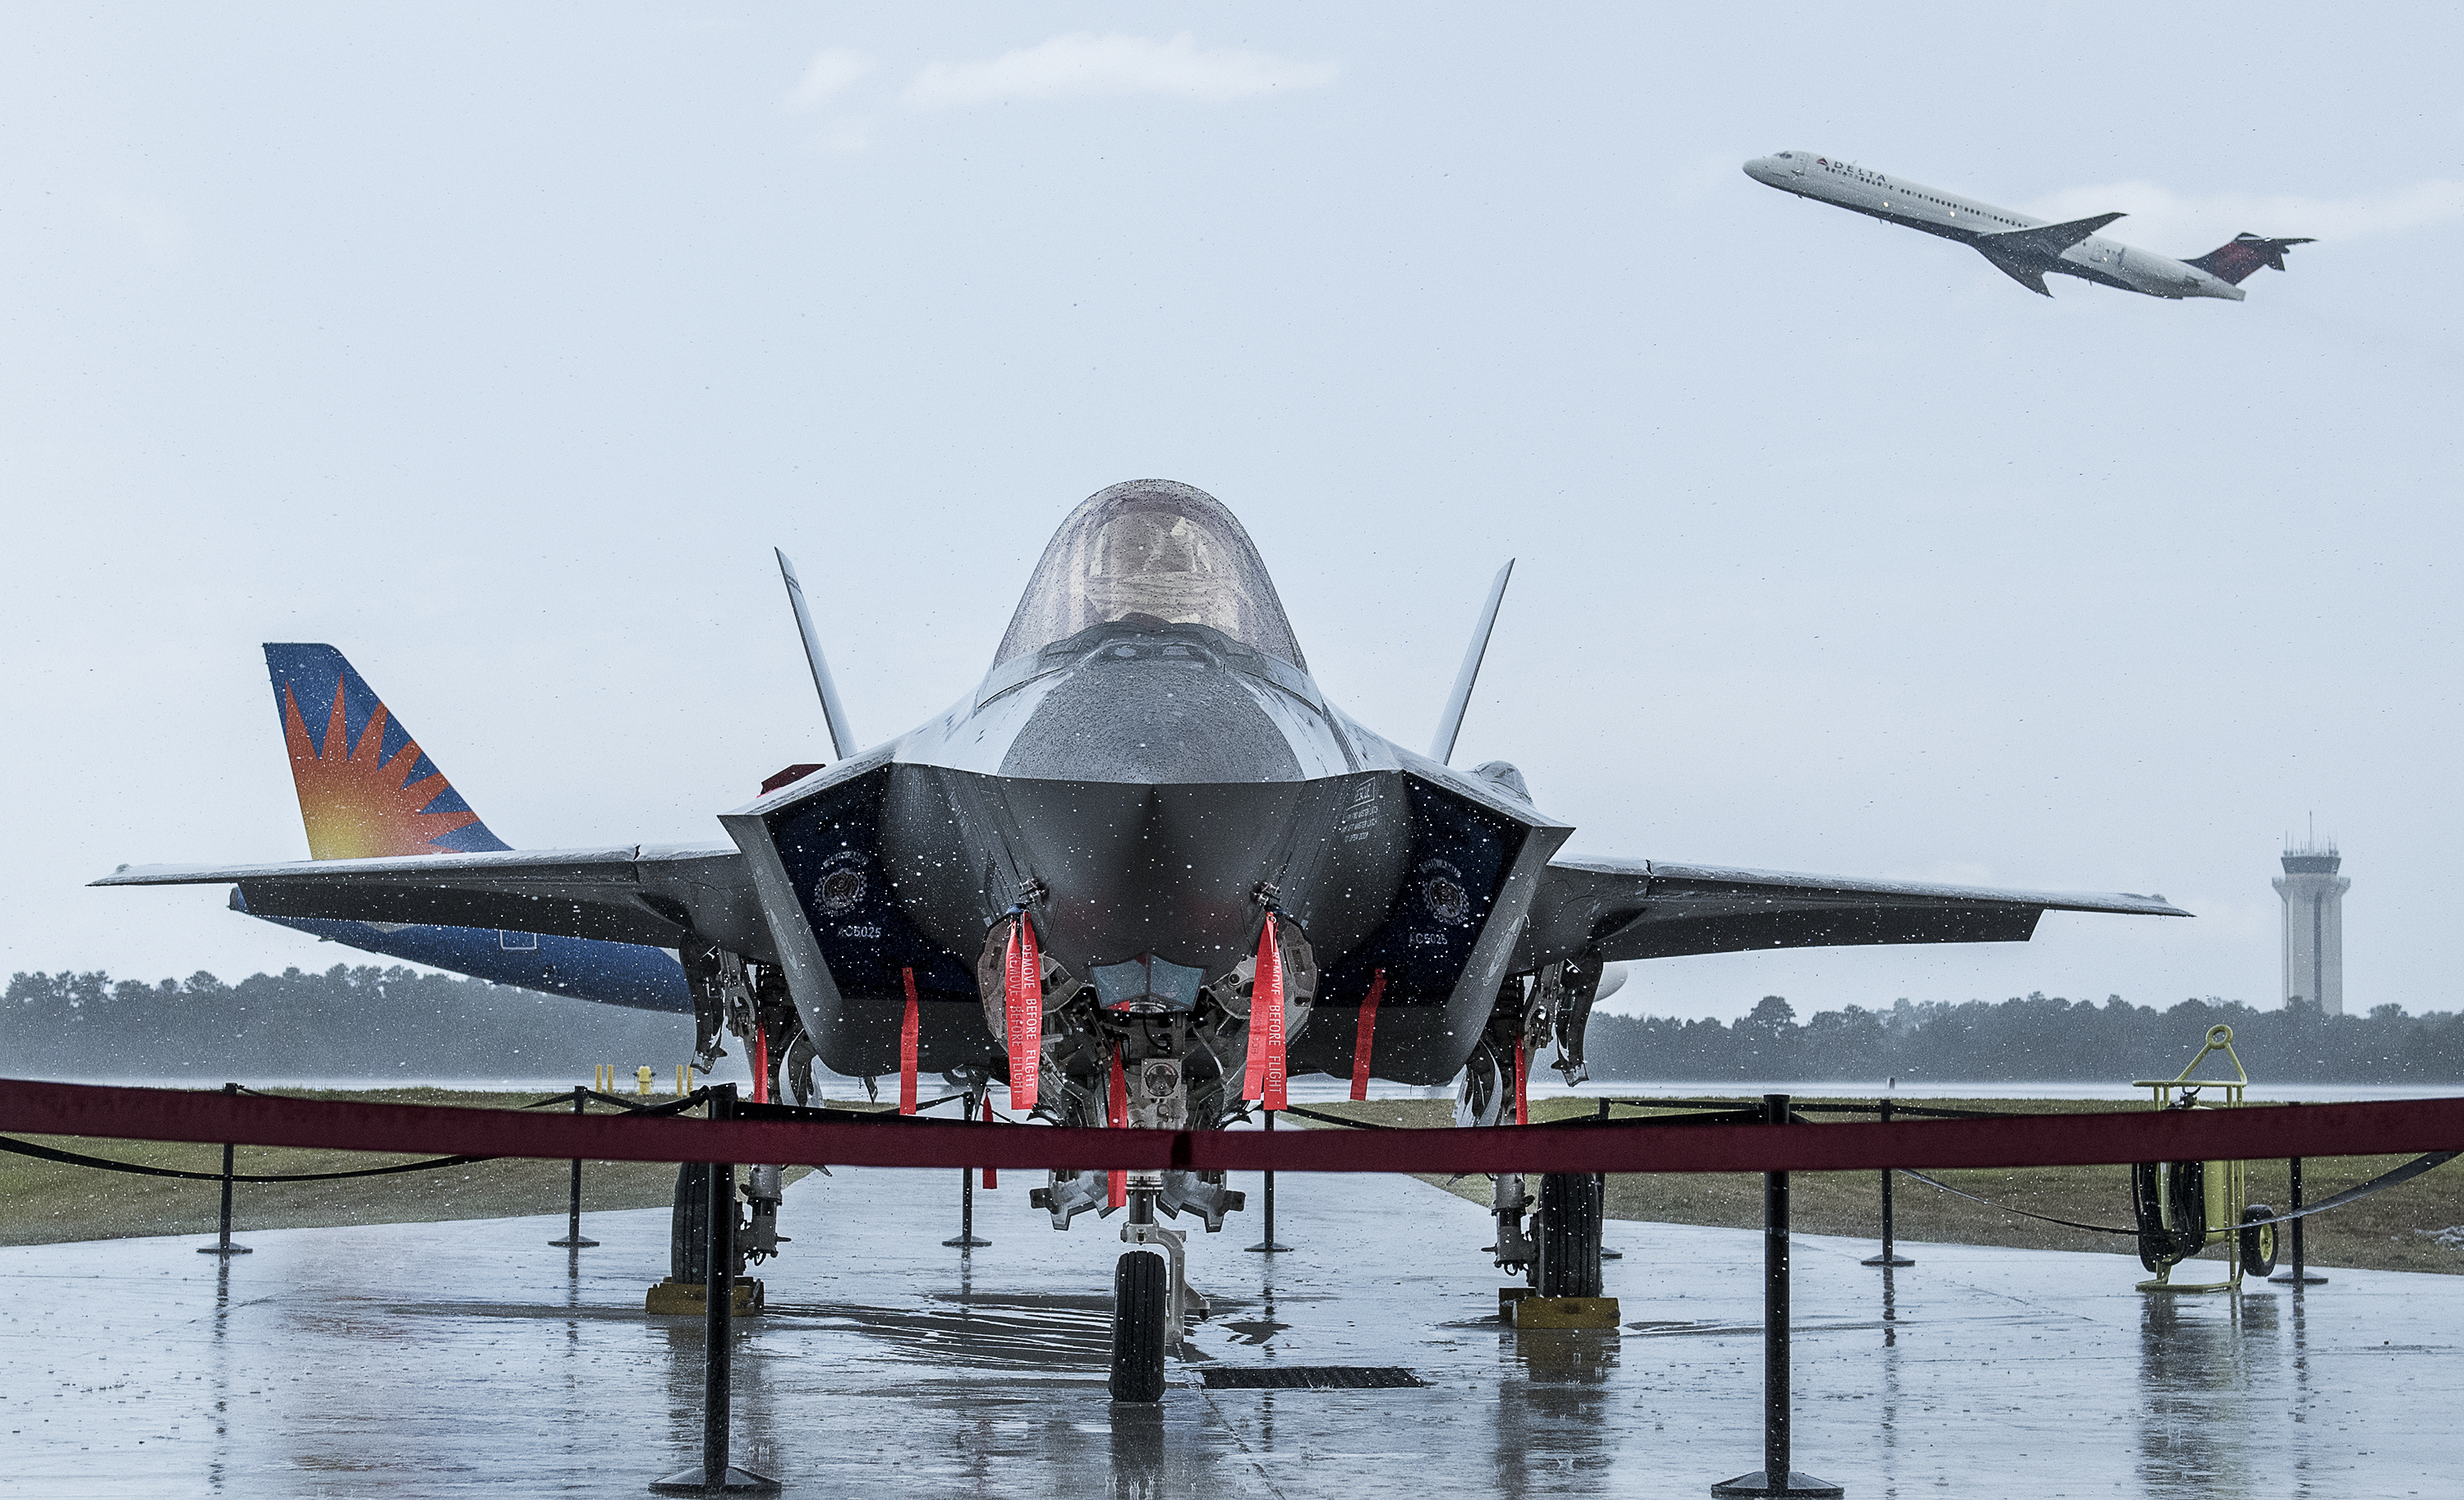 F-35a lightning ii stealth fighter photo